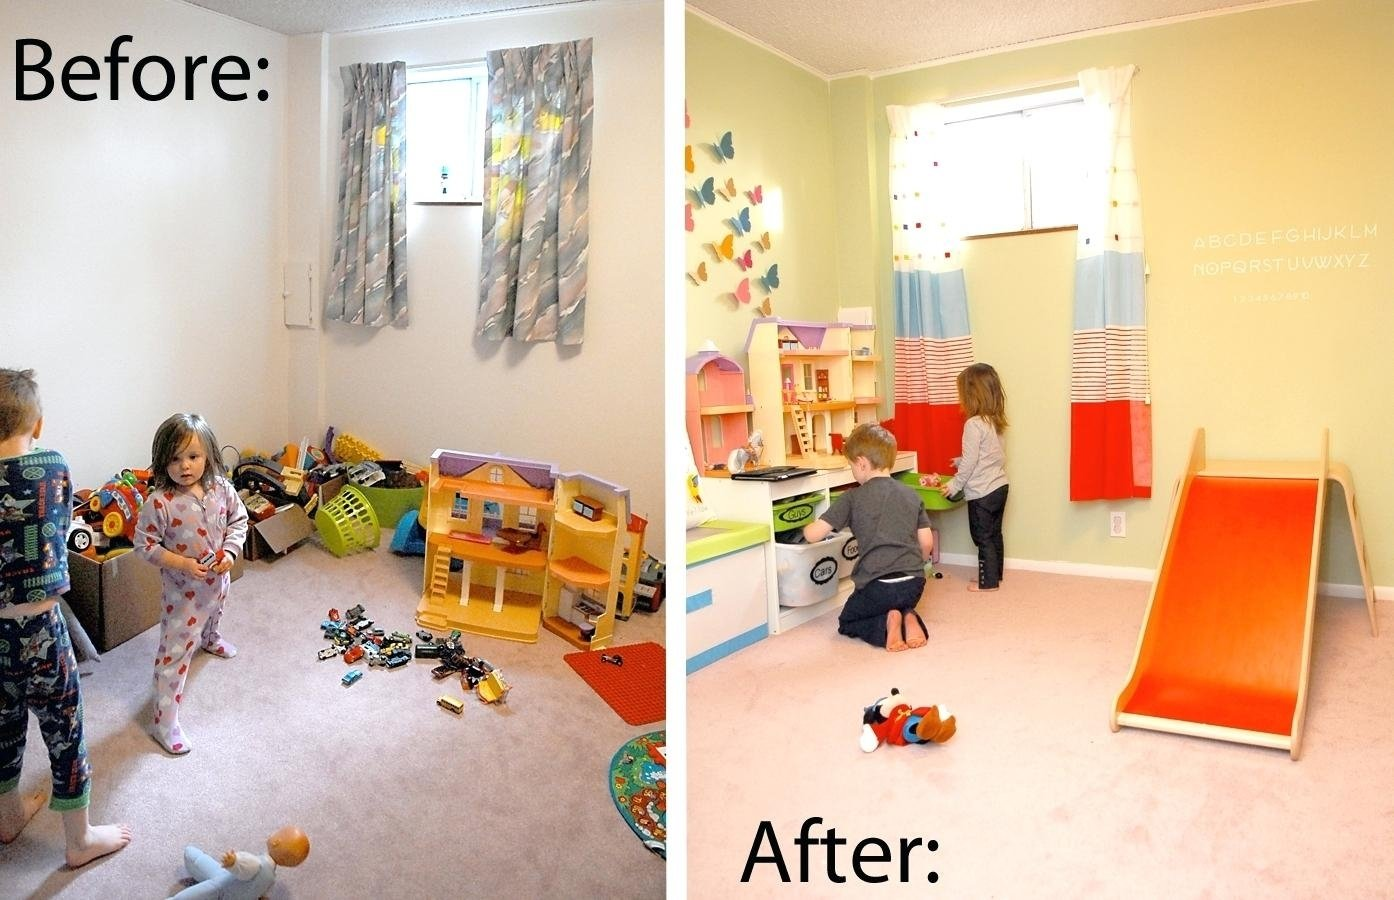 10 Nice Playroom Ideas For Small Spaces decoration kids play room lovely playroom ideas for small spaces 2020